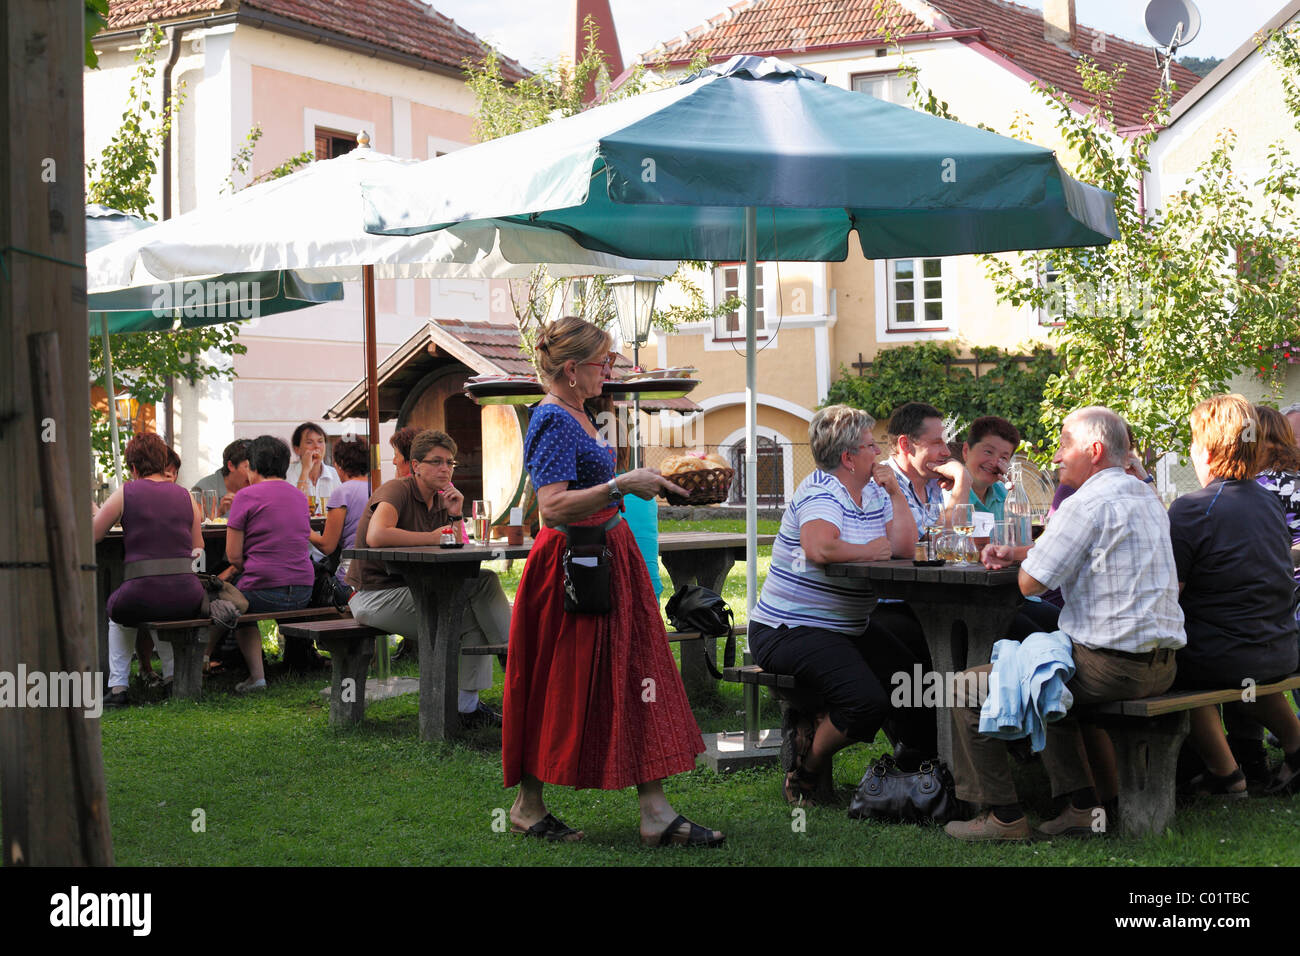 Noiblinger seasonal wine tavern, Weissenkirchen in the Wachau valley, Waldviertel region, Lower Austria, Austria, - Stock Image